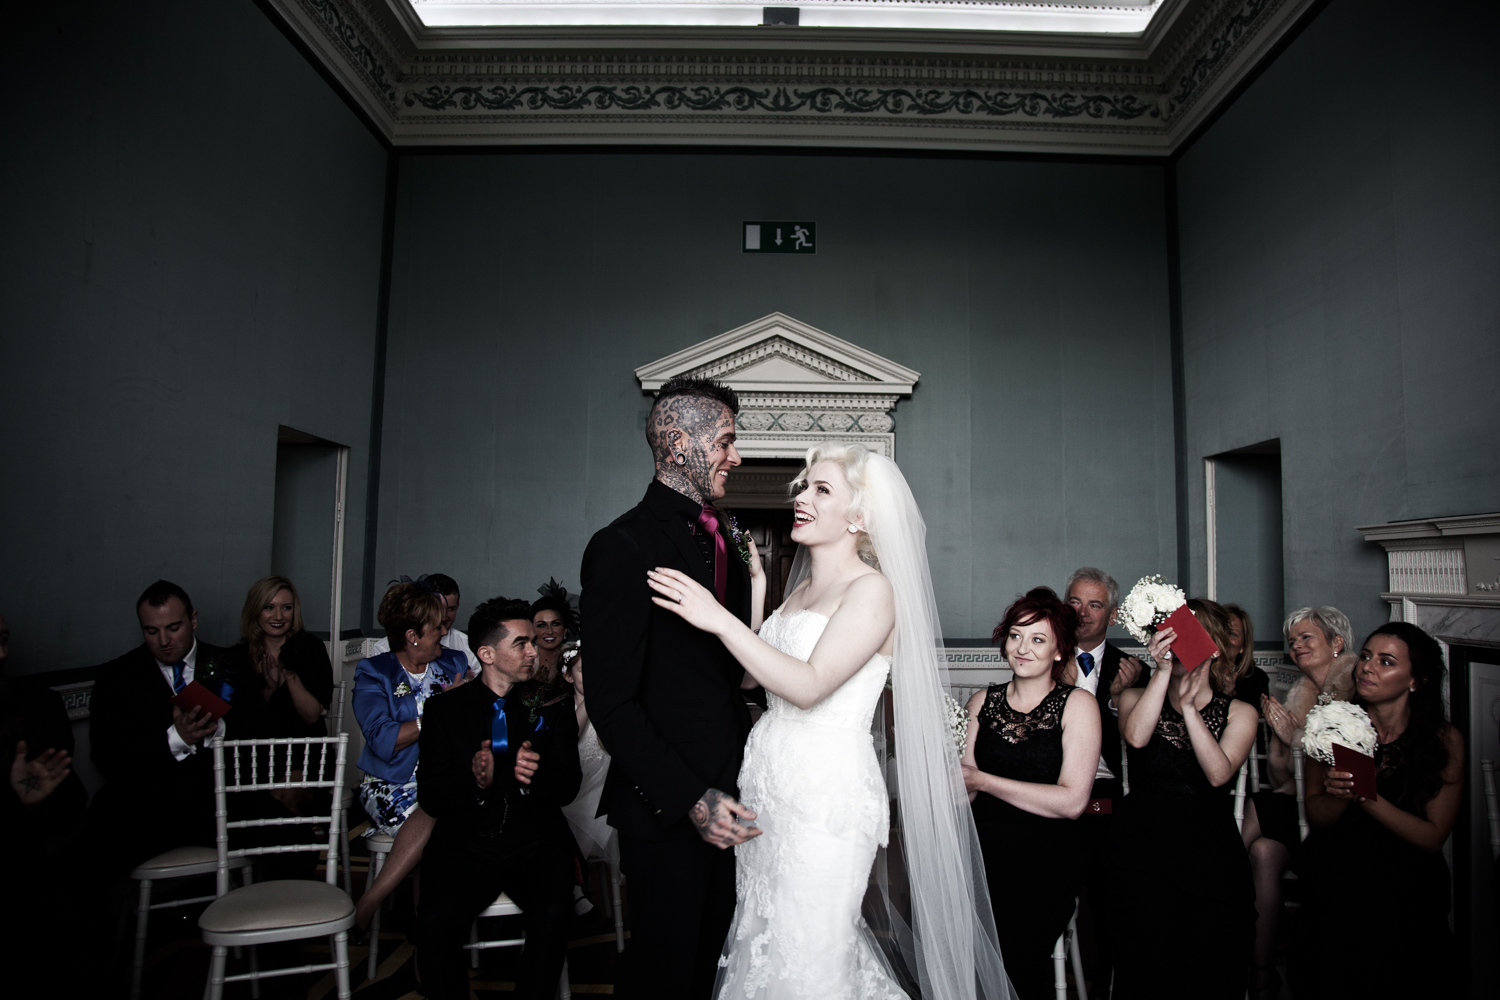 Casino Marino Dublin civil wedding ceremony